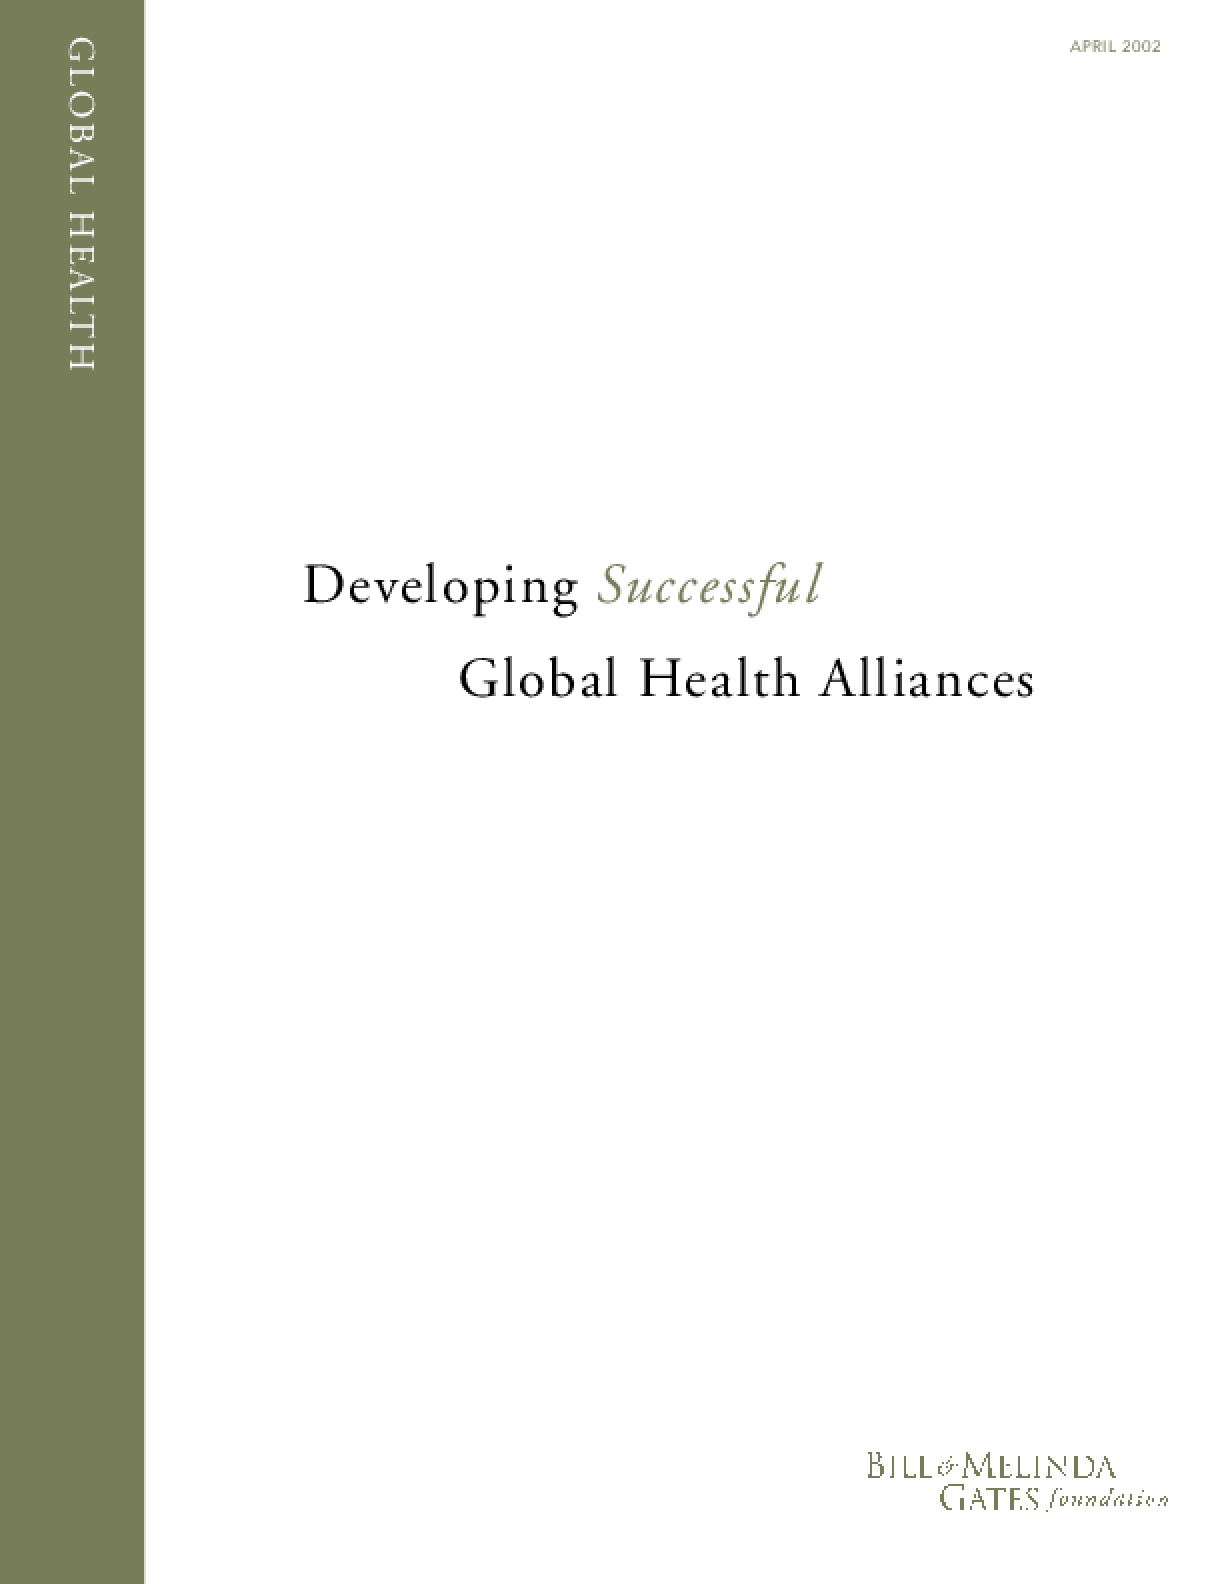 Developing Successful Global Health Alliances